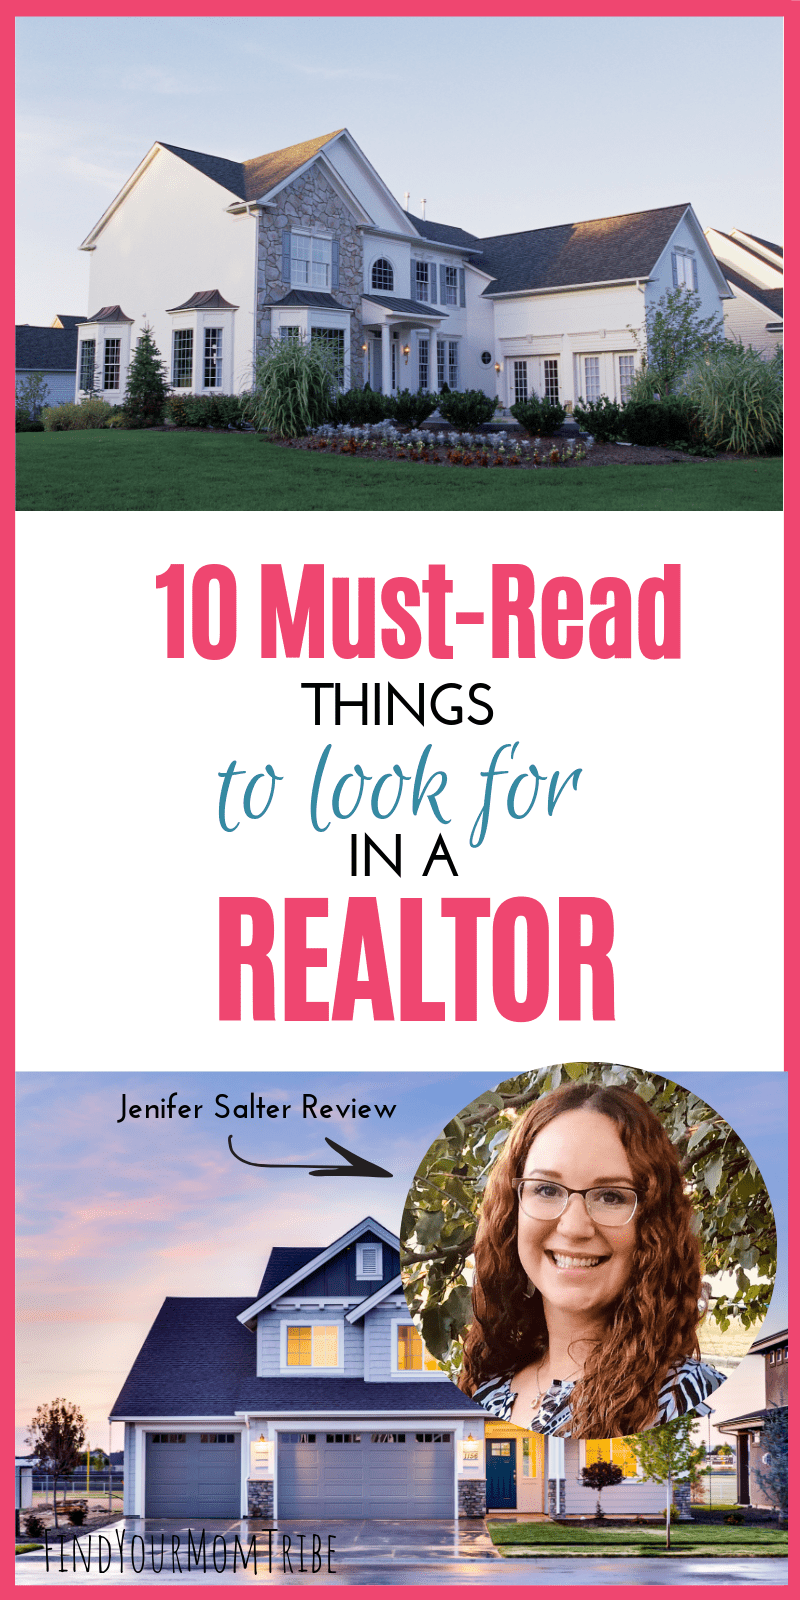 If you're house hunting, you'll want to be sure to choose the right realtor. Here are 10 things to look for + my review of realtor Jenifer Salter.